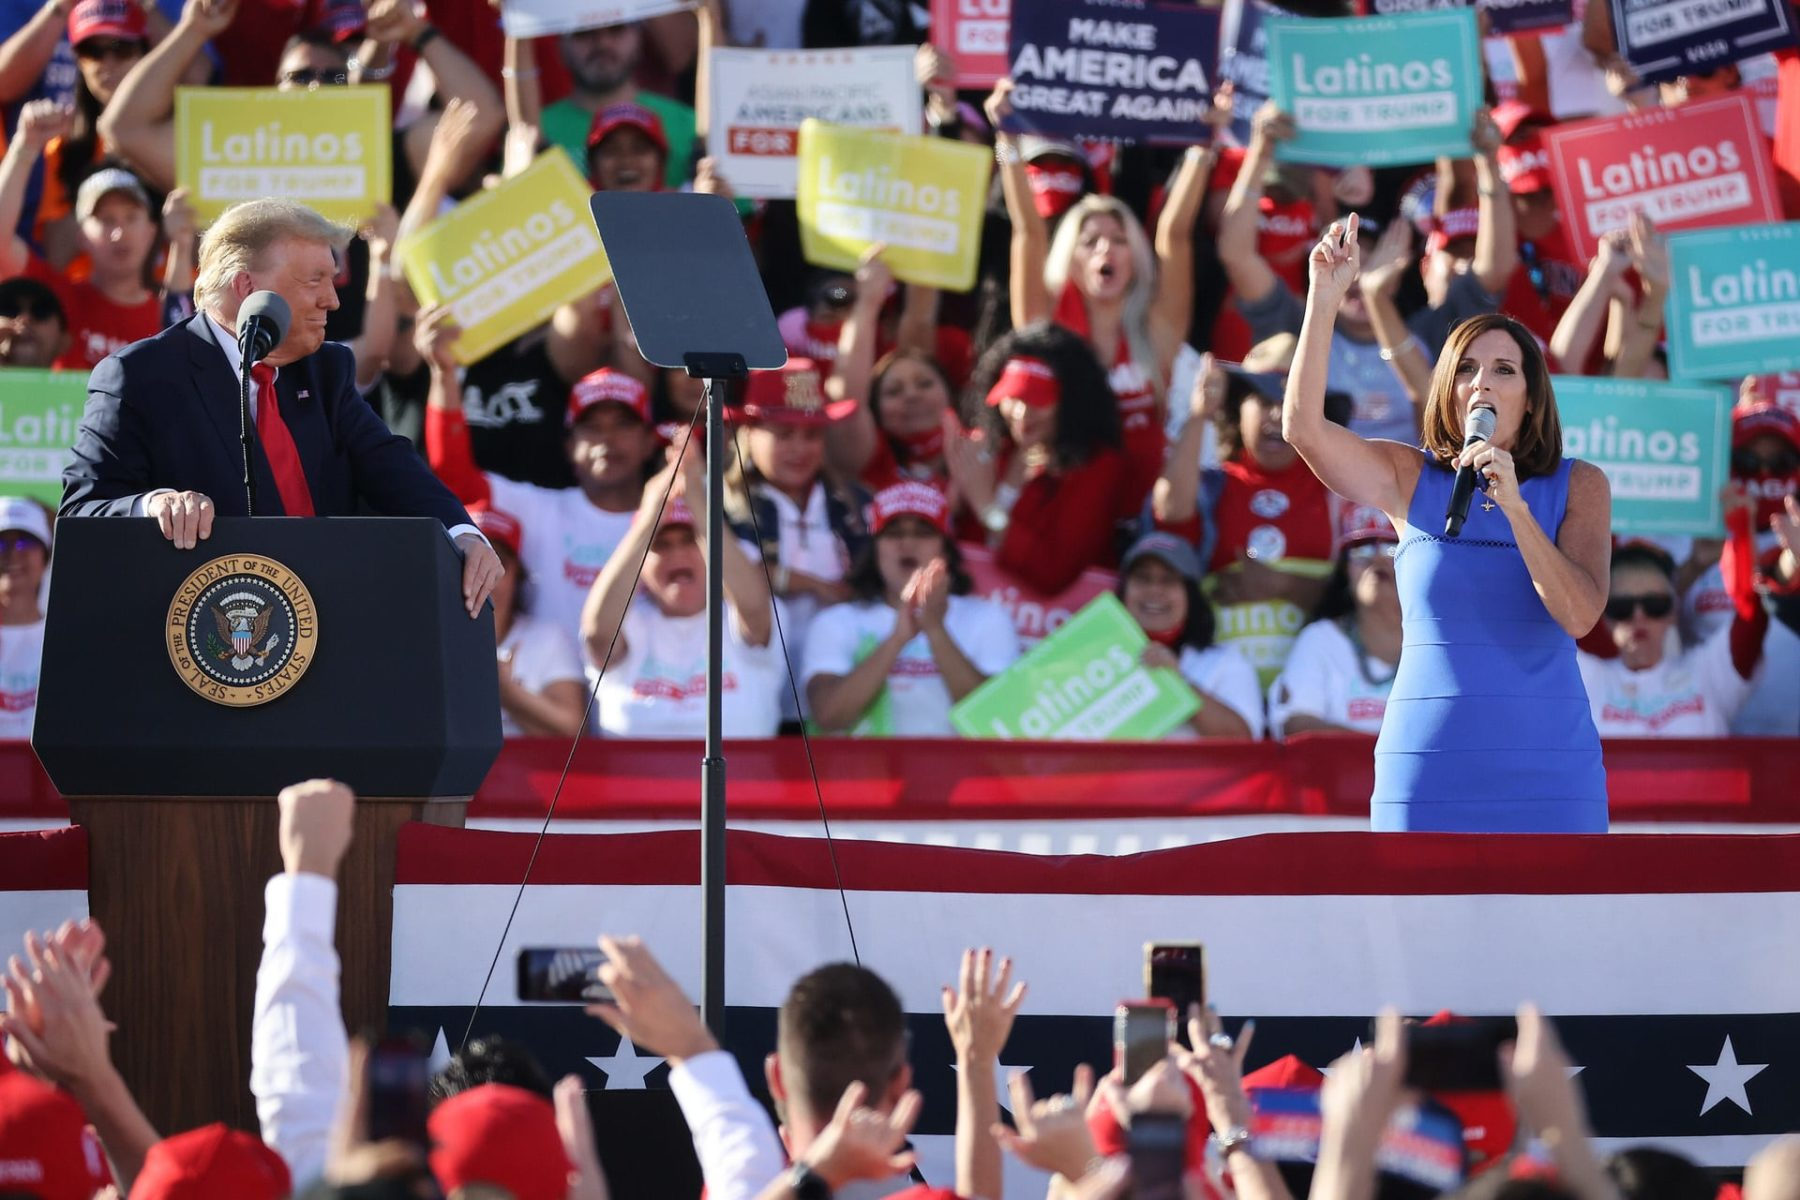 GOODYEAR, ARIZONA - OCTOBER 28: Sen. Martha McSally (R-AZ) (R) praises U.S. President Donald Trump during a campaign rally at Phoenix Goodyear Airport October 28, 2020 in Goodyear, Arizona. With less than a week until Election Day, Trump and his opponent, Democratic presidential nominee Joe Biden, are campaigning across the country. (Photo by Chip Somodevilla/Getty Images)